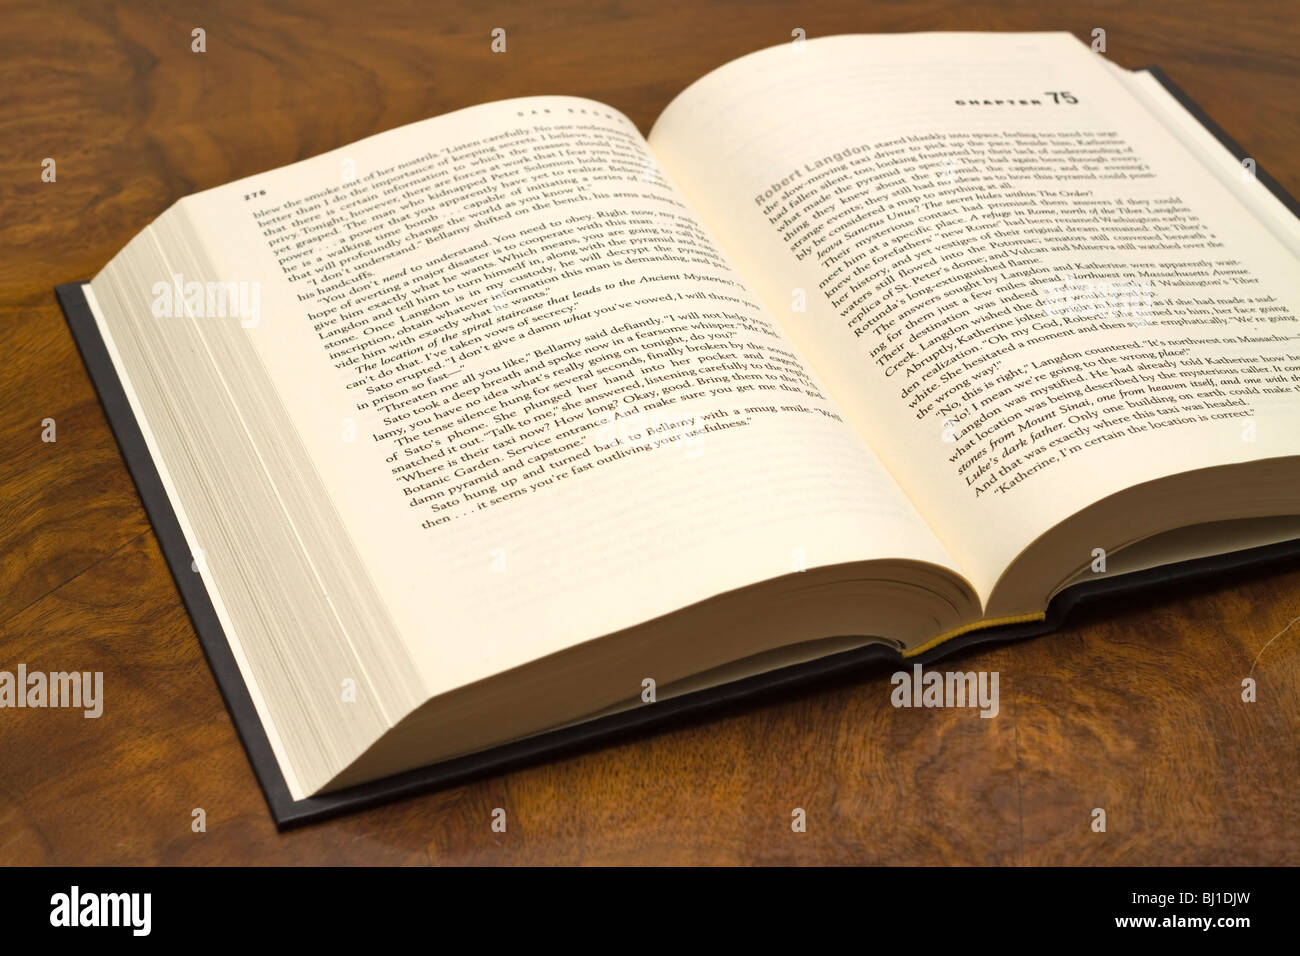 Book open on a table - Stock Image